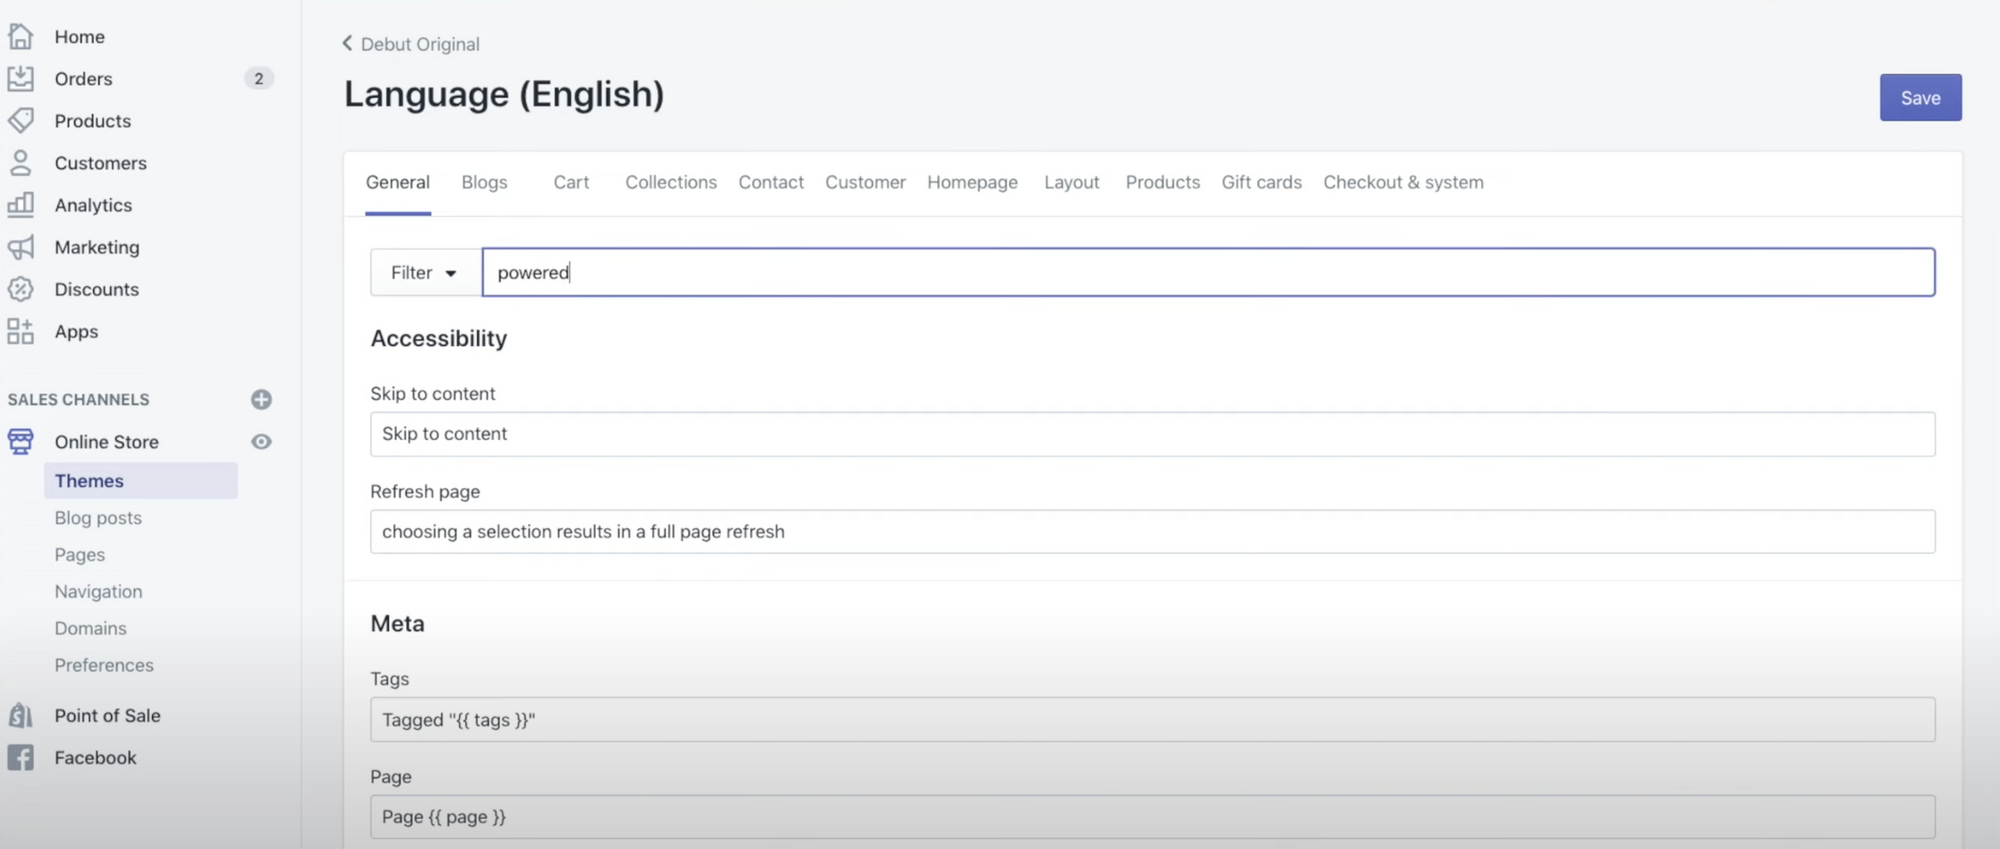 """Edit Languages: Filter for """"powered"""""""